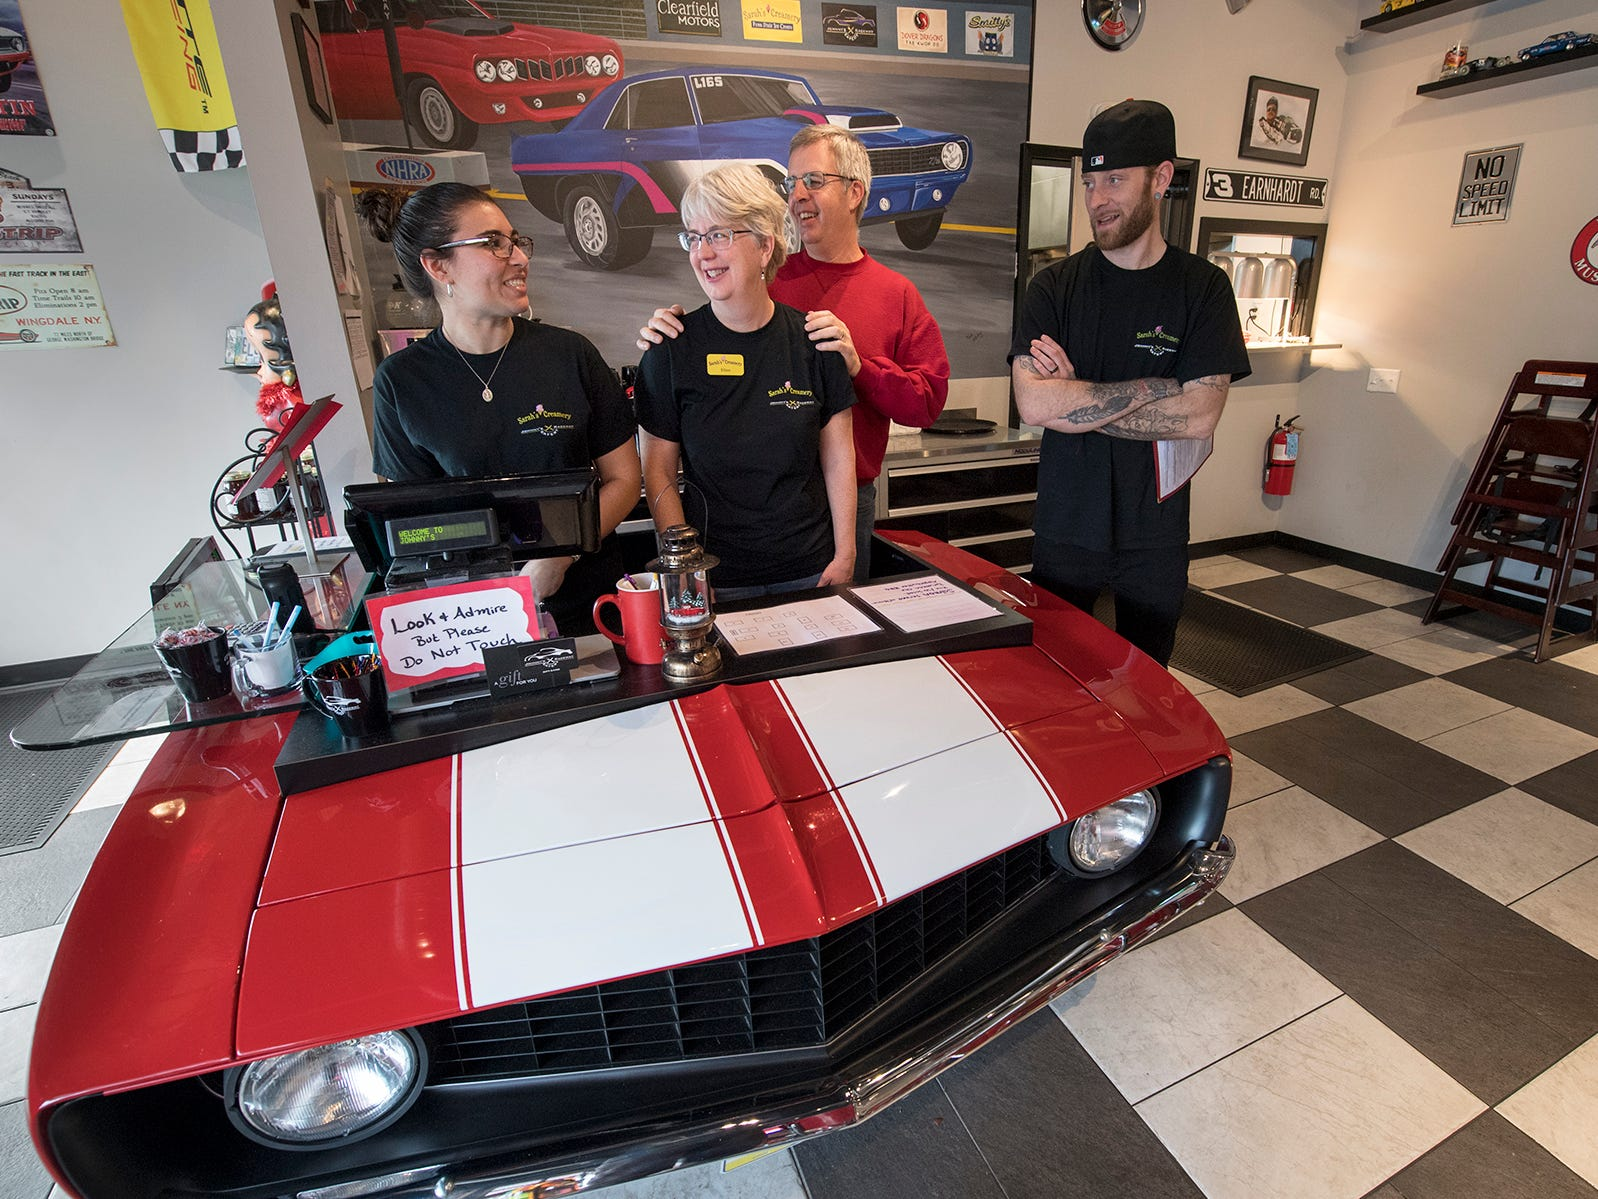 From the left, Carly Rossi, Ellen Shaffer, Jerry Shaffer, and Matt Burnham in front of the register desk that is modeled after a 69 Camaro. Jerry Shaffer made the desk out of reproduction parts and a hood from an actual Camaro.